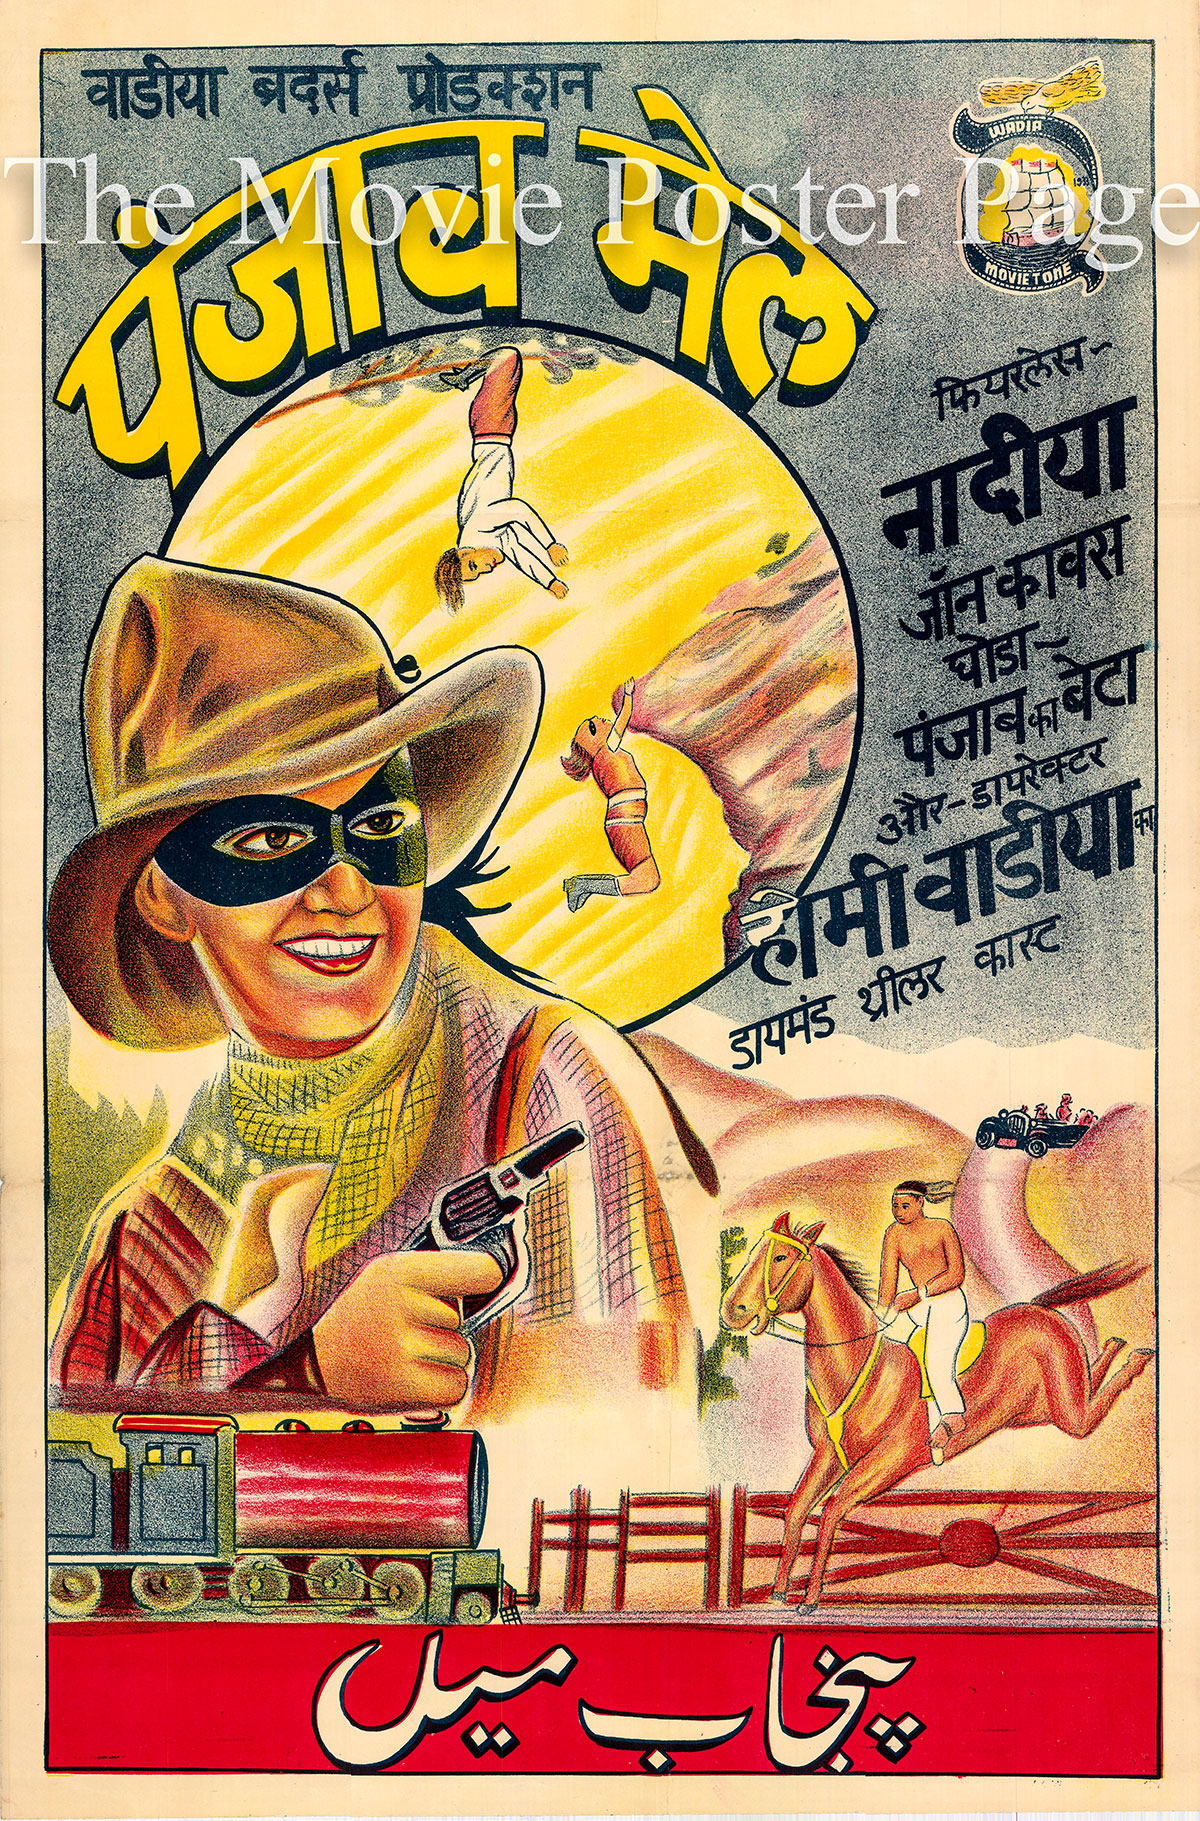 Pictured is an Indian promotional poster for the 1939 Homi Wadia film Punjab Mail starring Fearless Nadia.